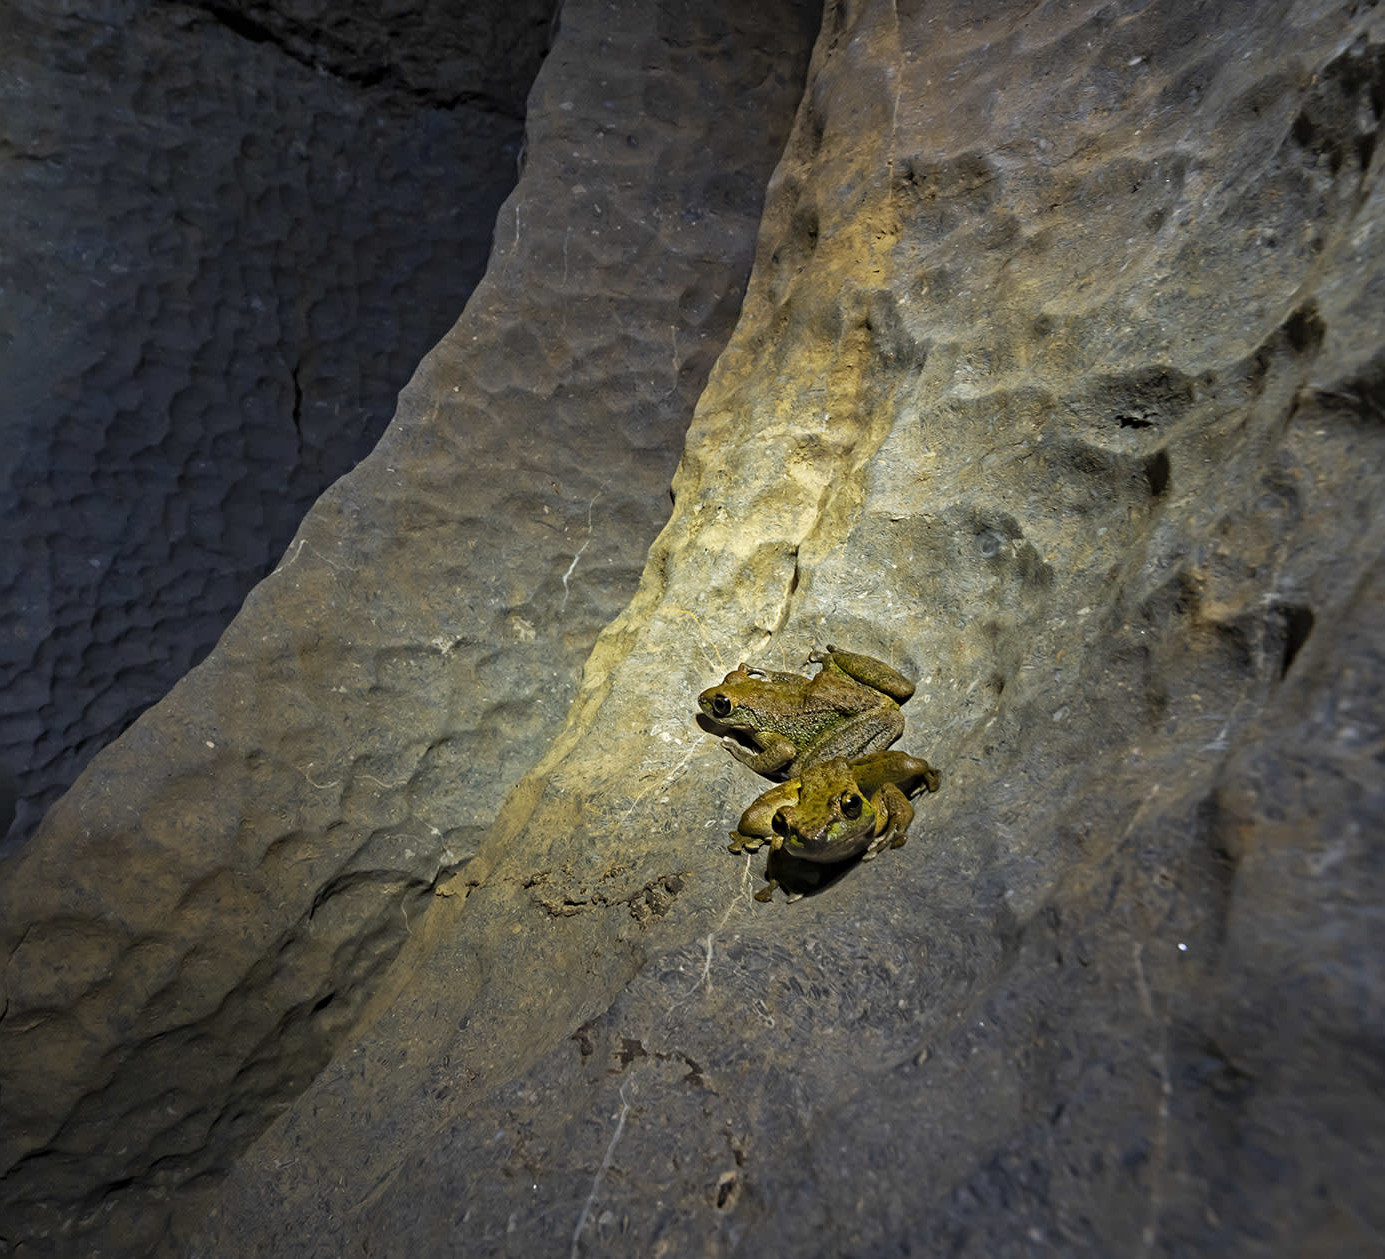 Life Without Light: Creatures of Meghalaya's Caves